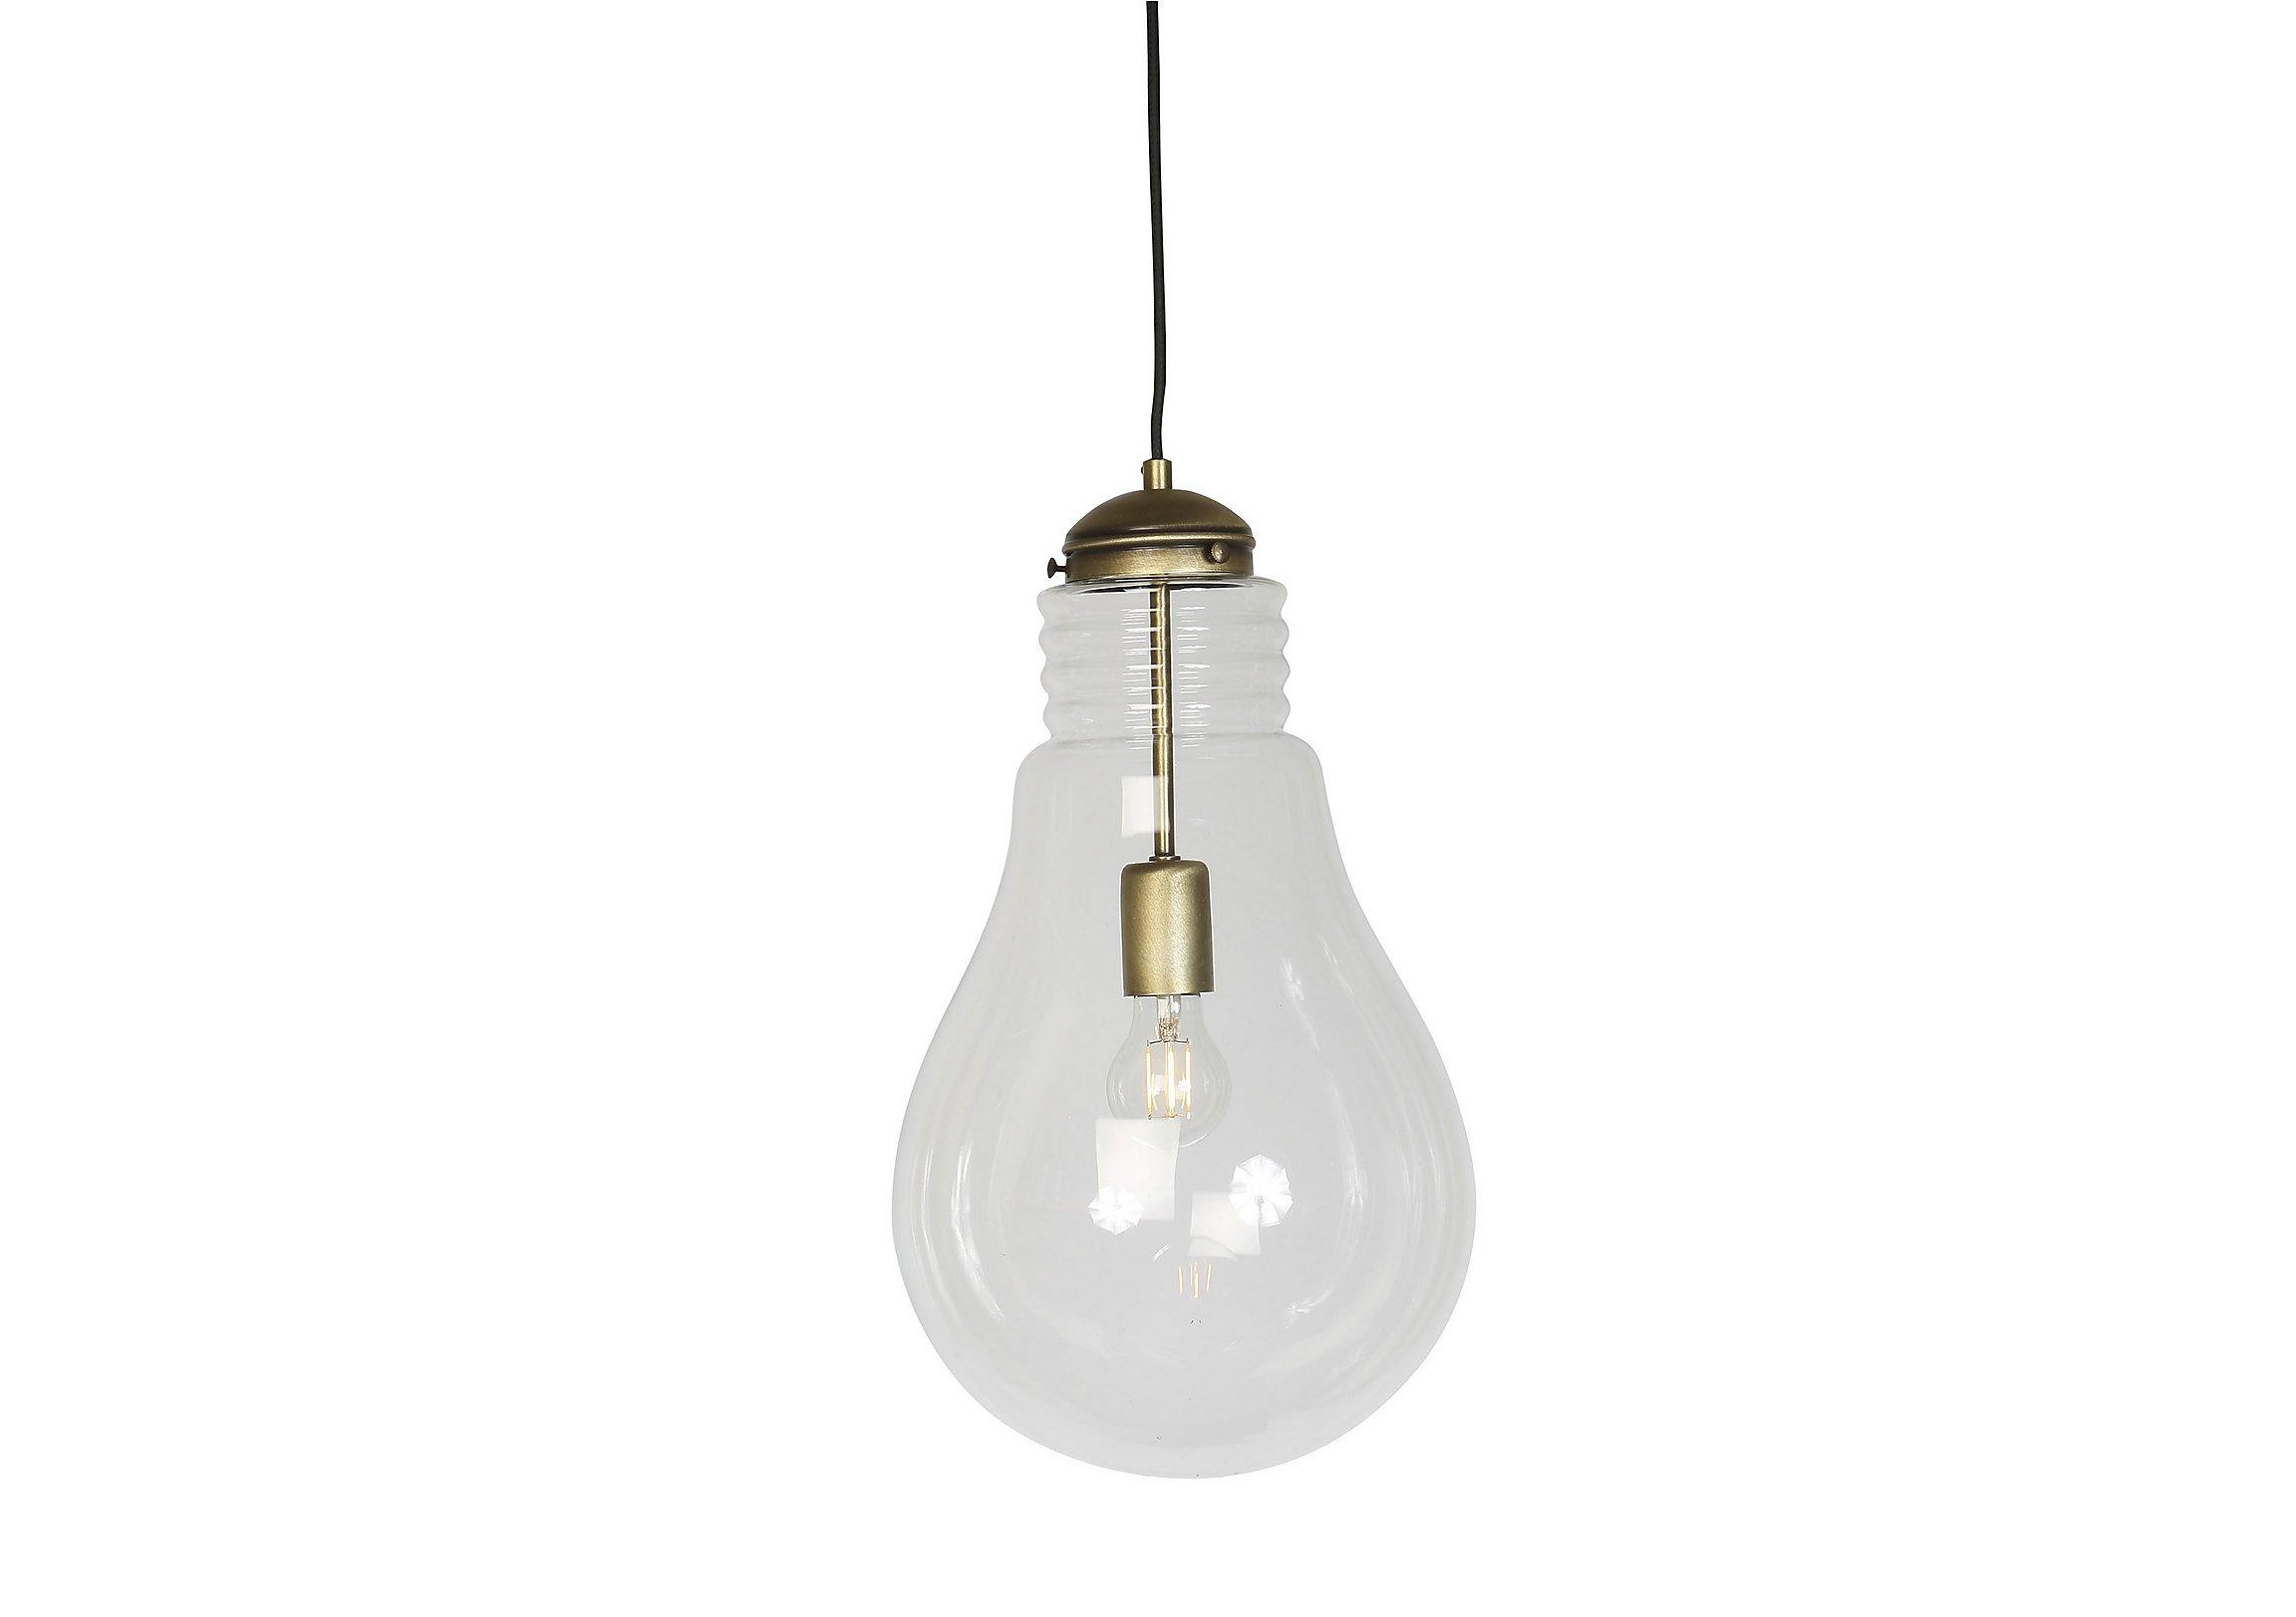 efficient tech ylighting pendant blog an light soco necessities lighting lightbulb yes from incandescent design bulb